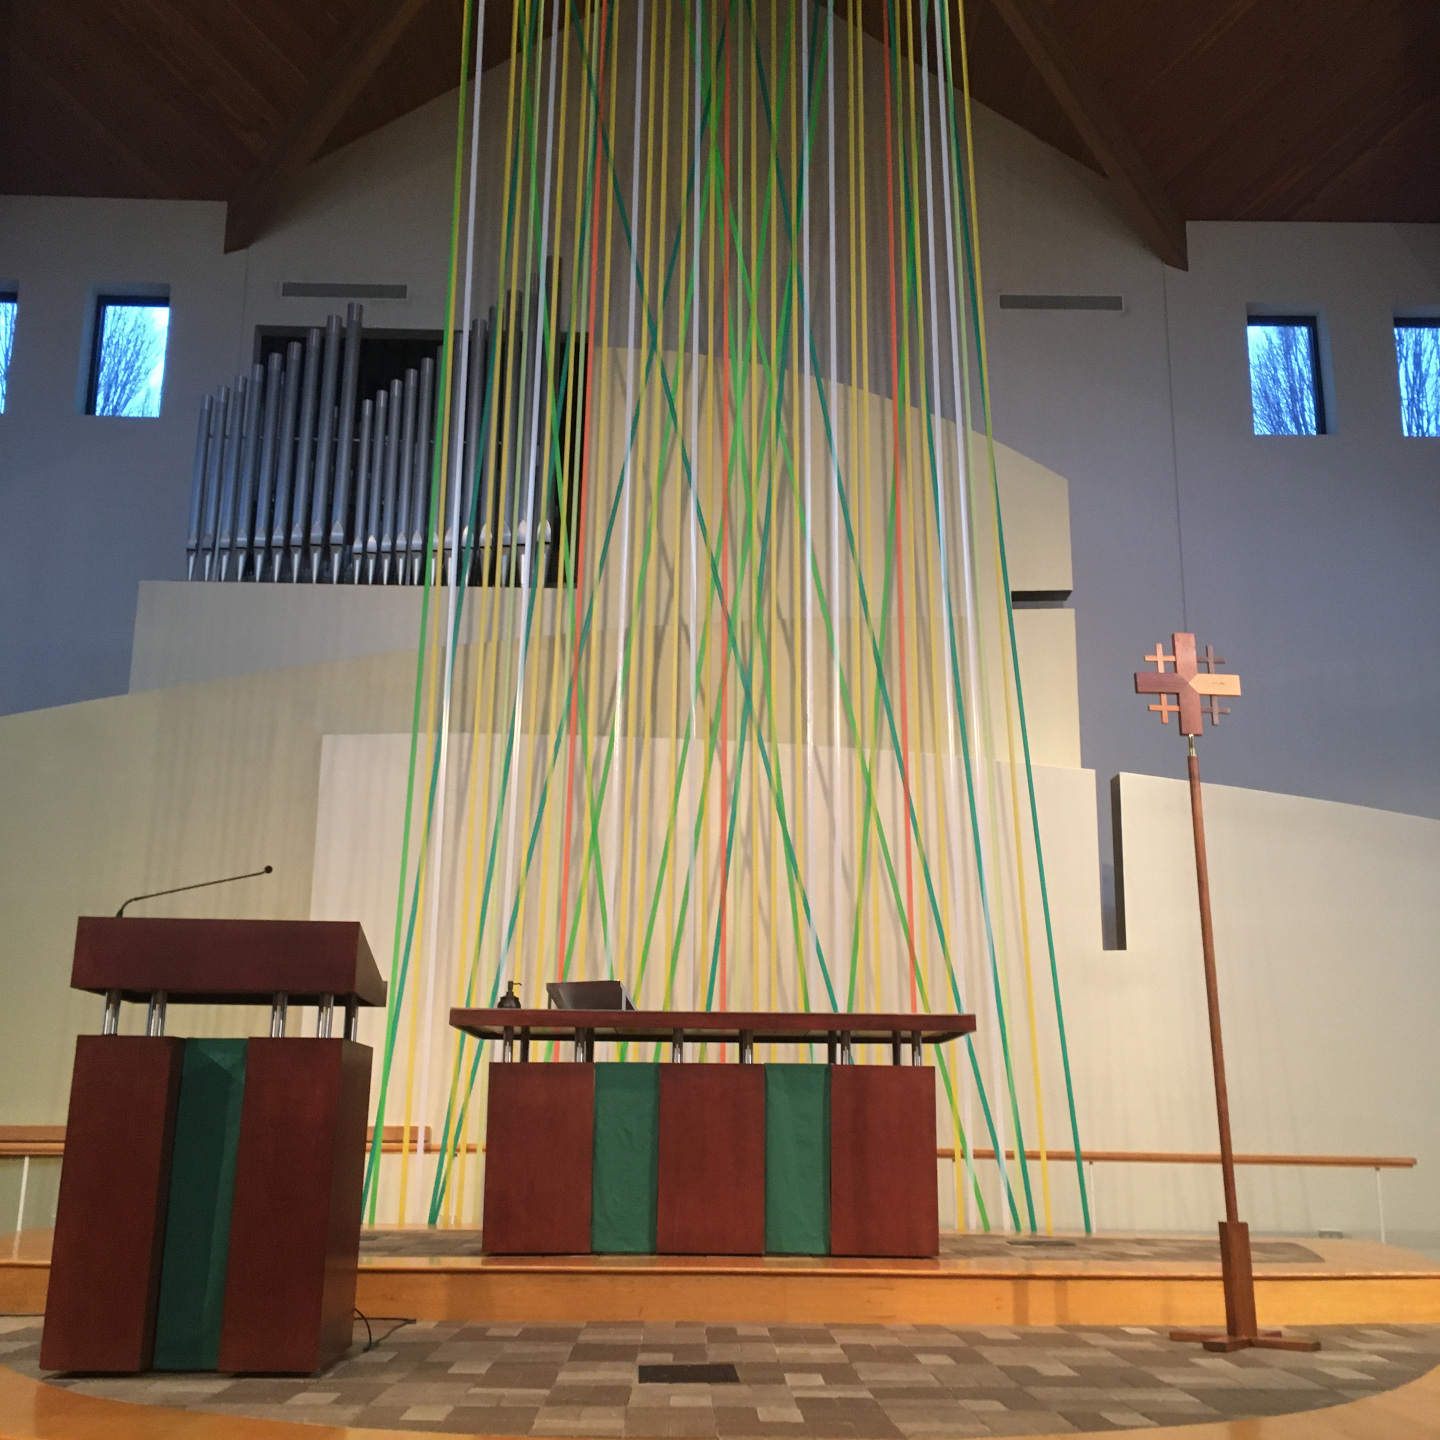 2020-02-09 sermon with readings from Isaiah 58, 1 Corinthians 2 and Matthew 5 - Pastor Martin Gehring